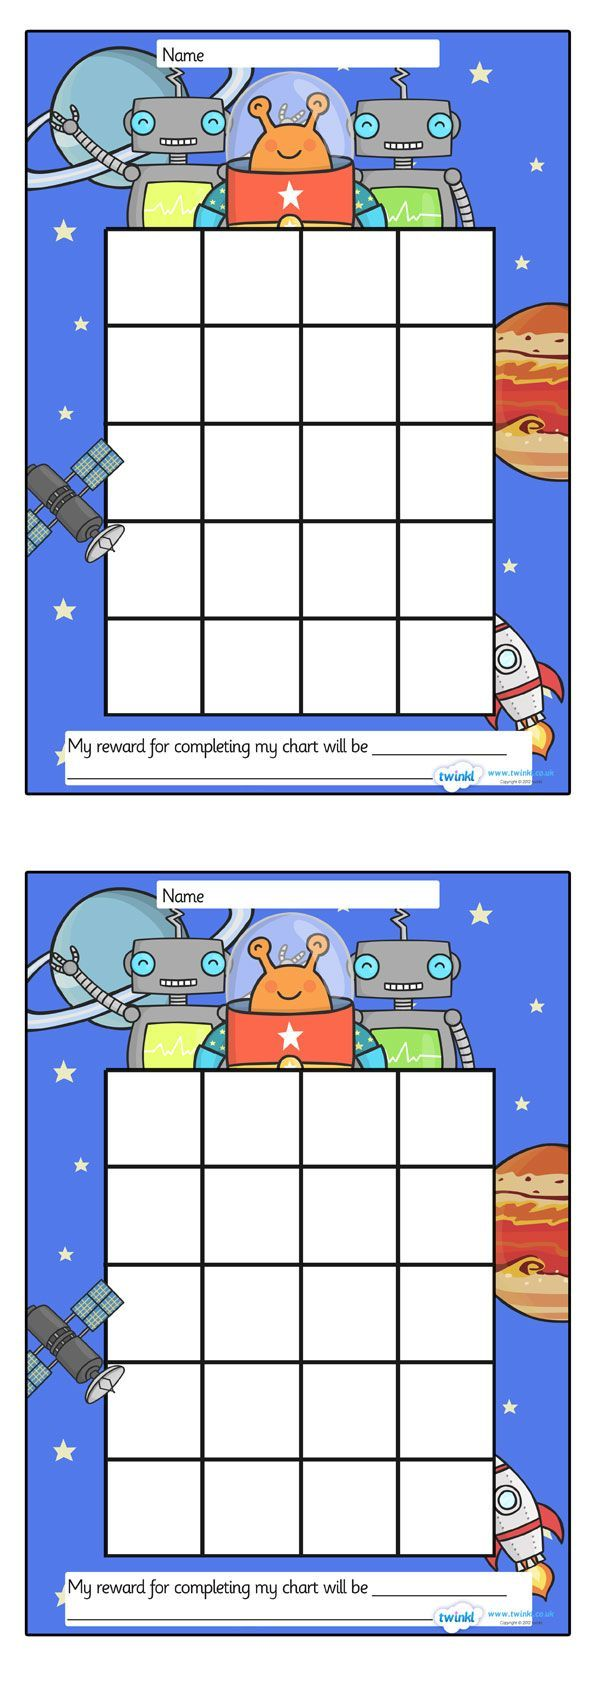 Colouring in reward charts - Twinkl Resources Space Sticker Stamp Reward Chart Classroom Printables For Pre